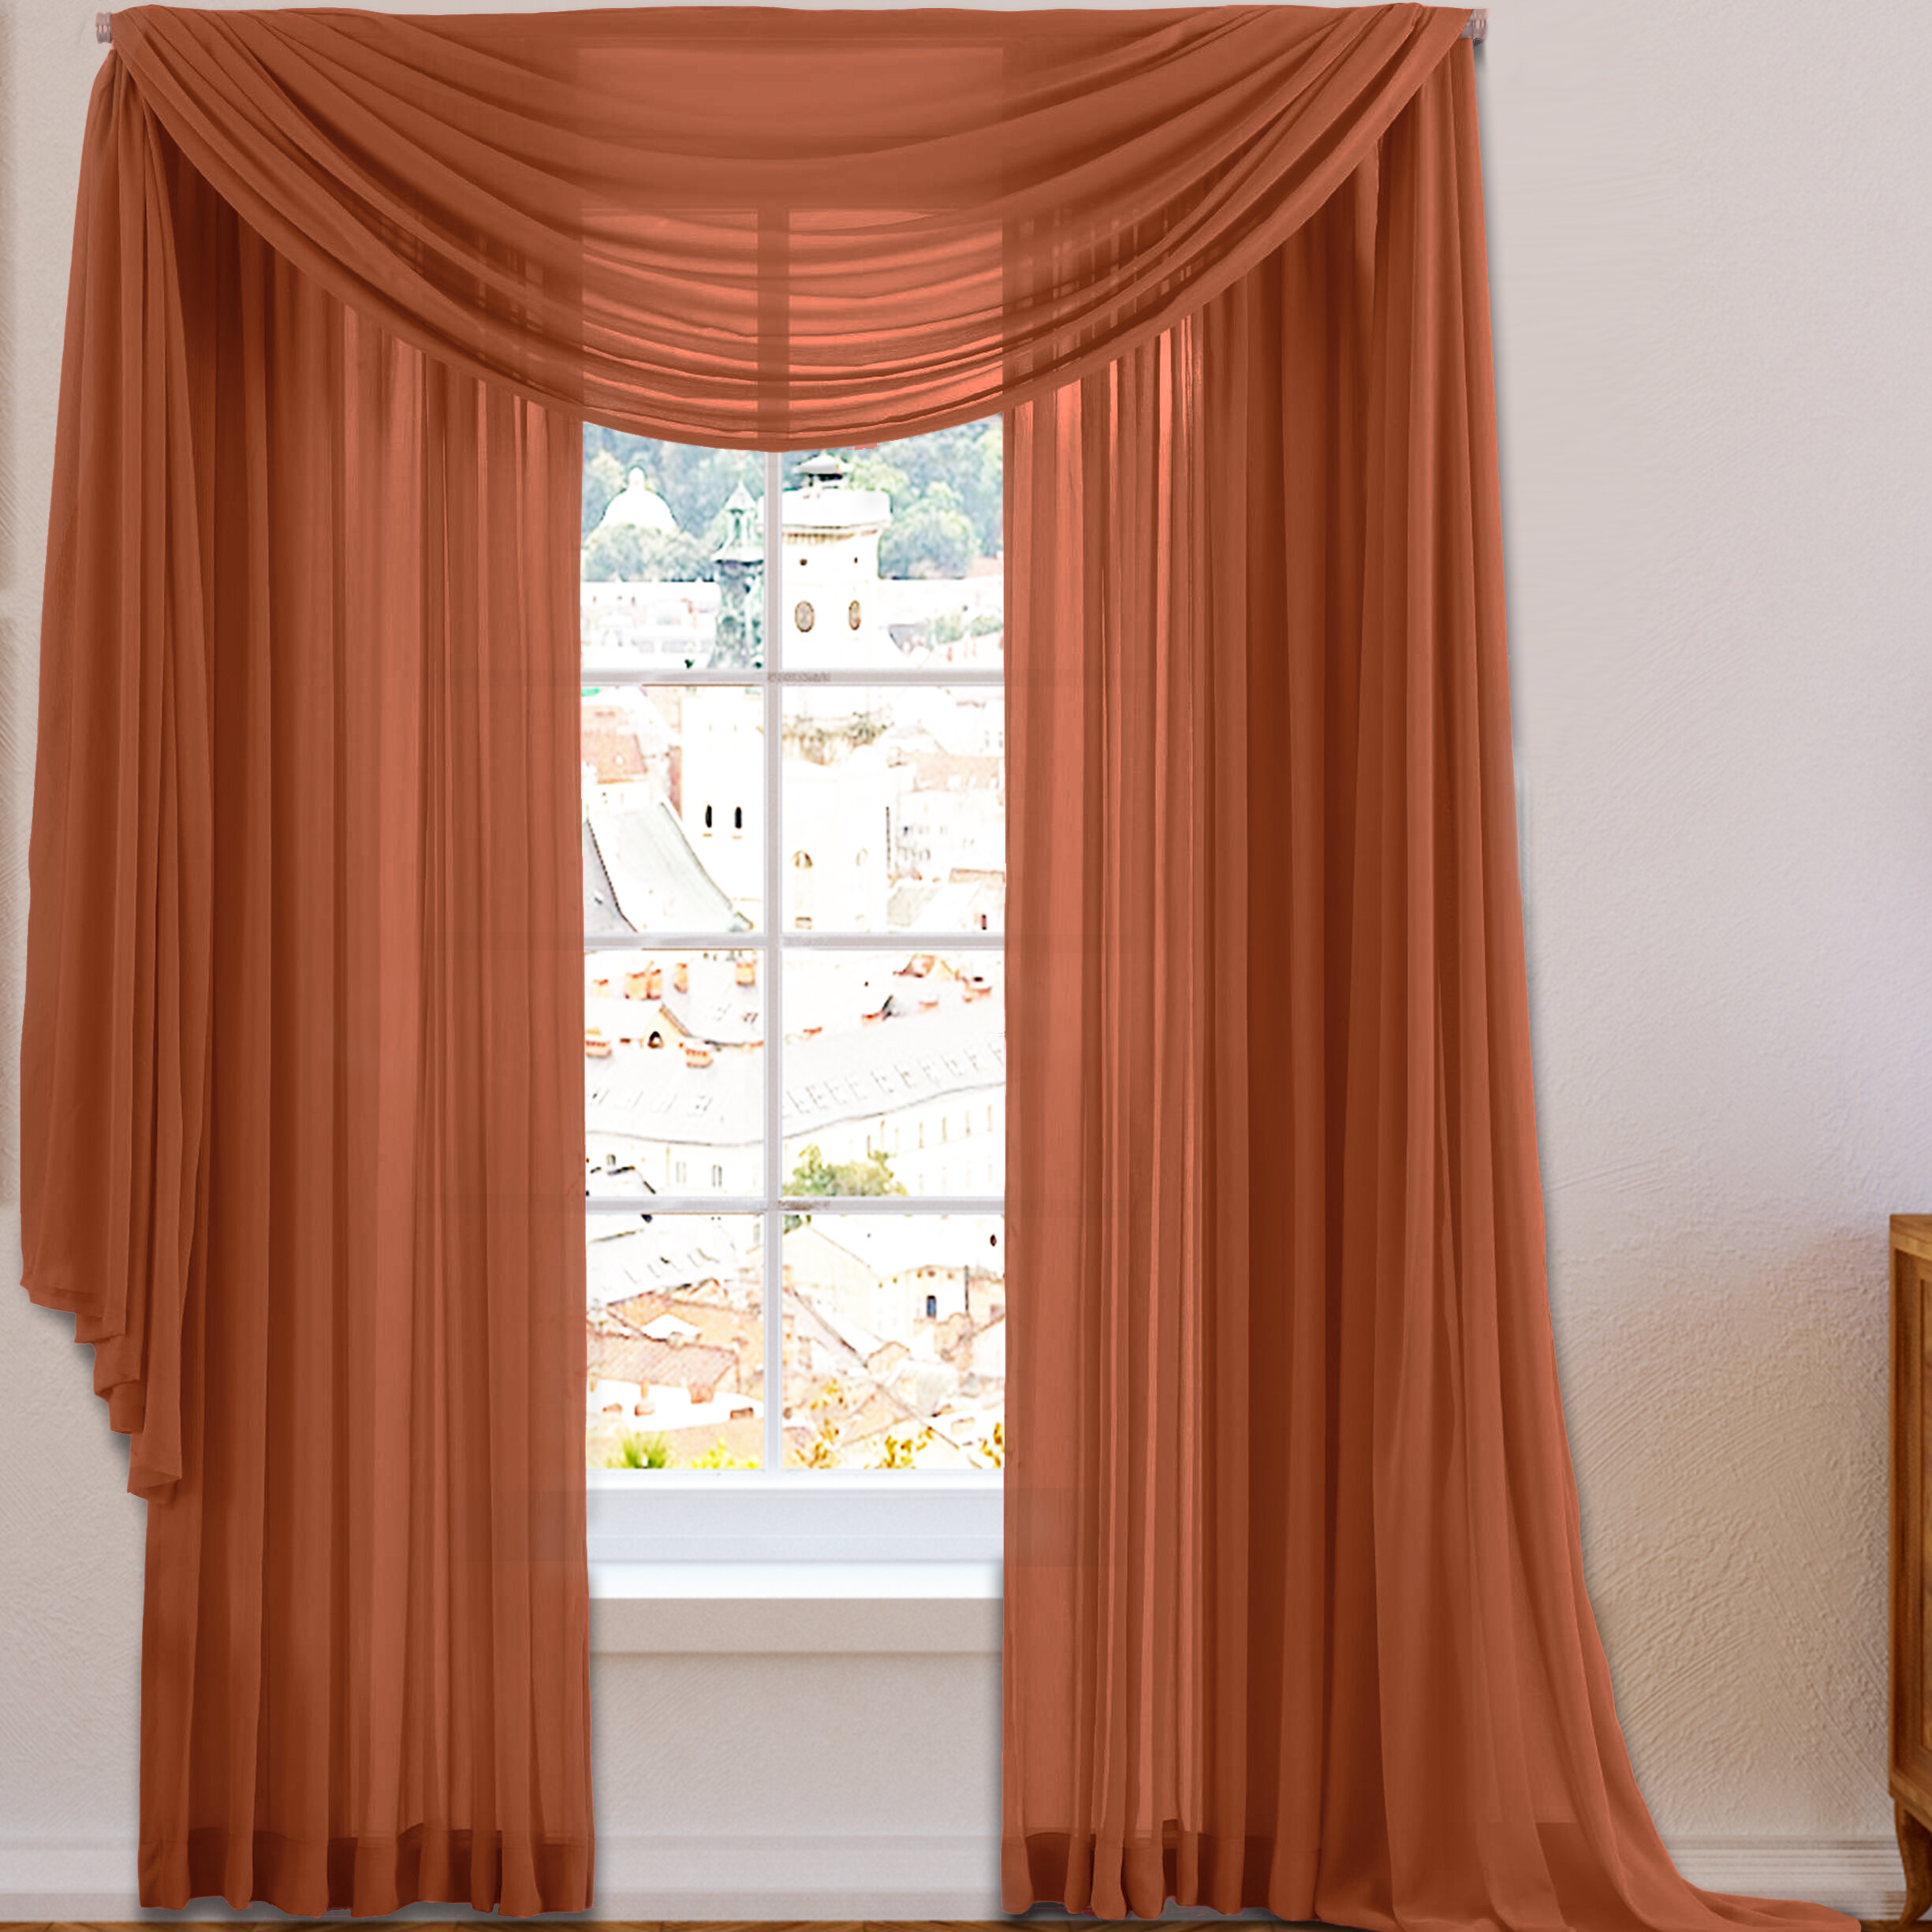 ideas taupe voile curtain image extra curtains of sheer valance elegant scarf window long